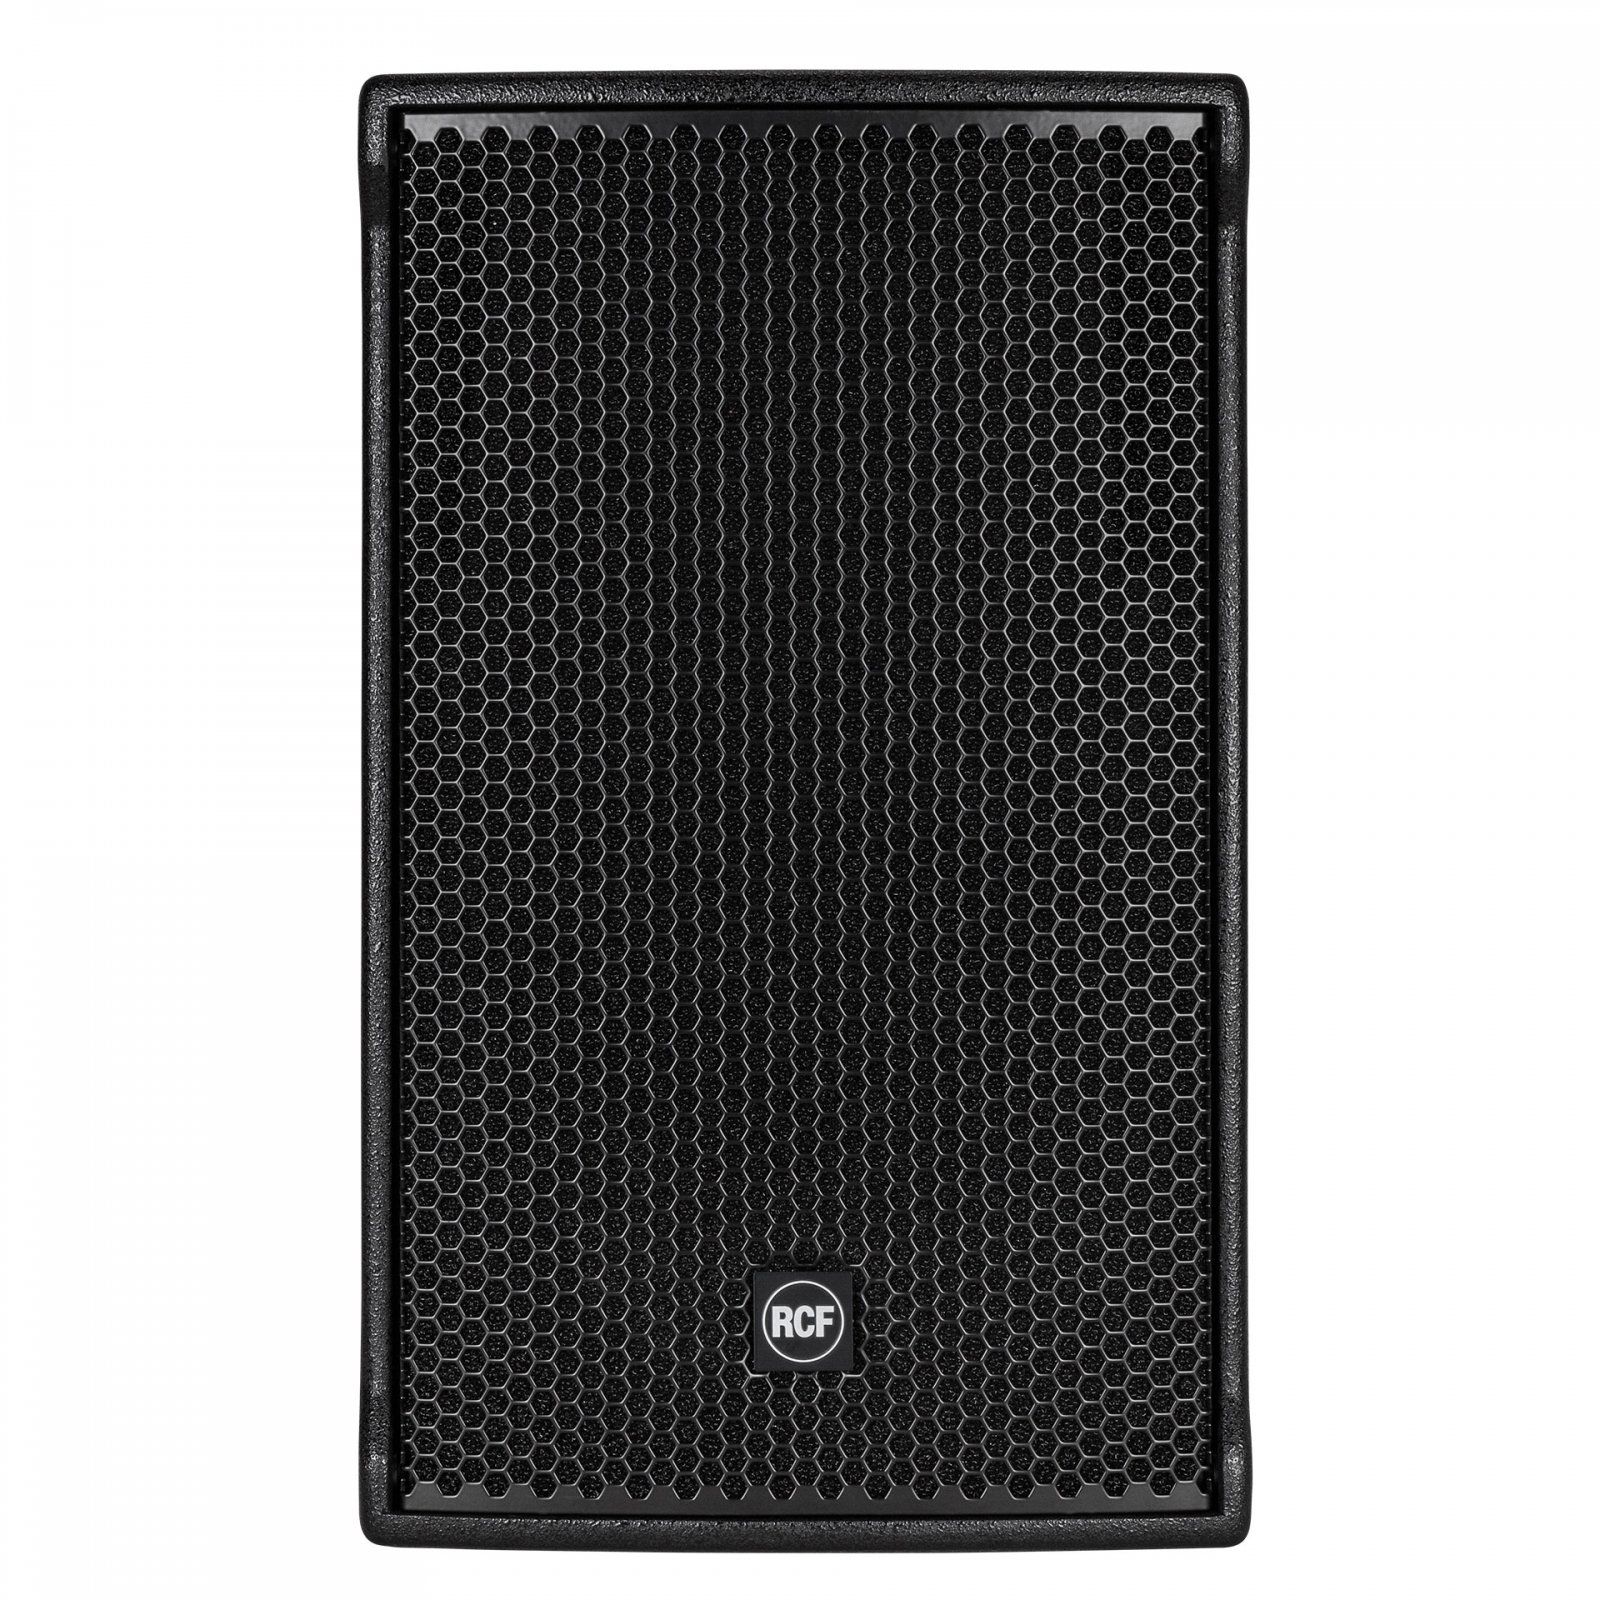 RCF NX32-A Active 12 2-way Powered Speaker